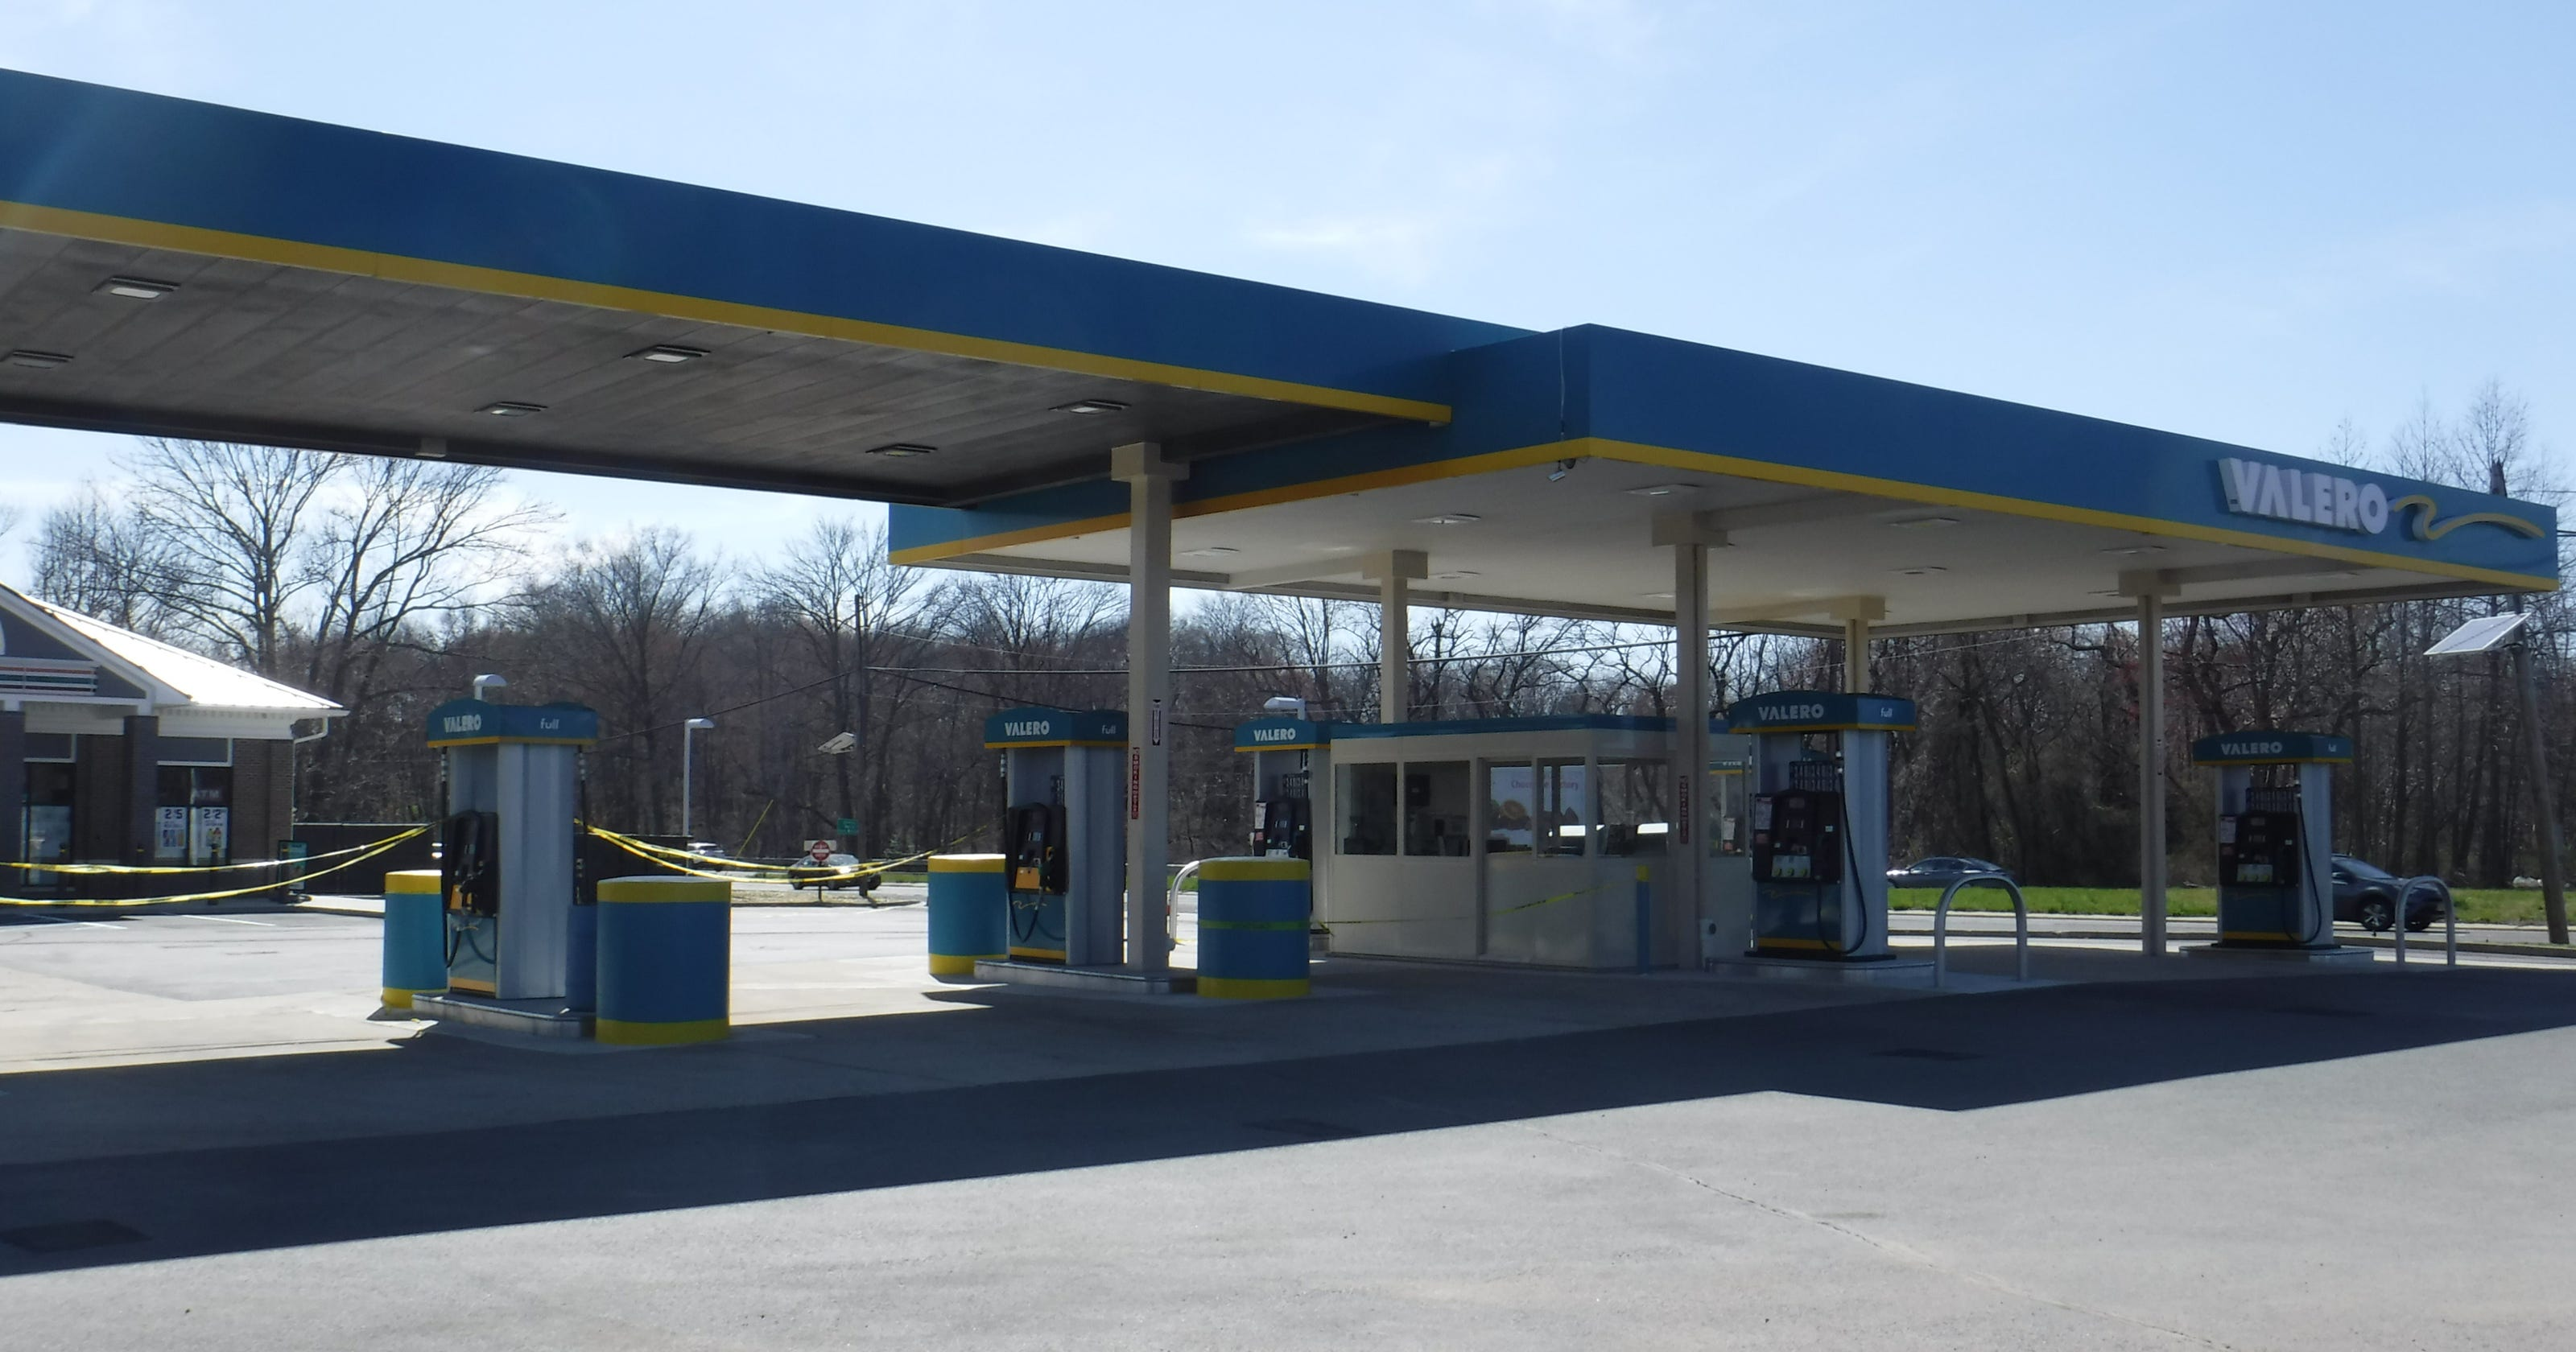 New 7 eleven valero gas station opens in cranbury colourmoves